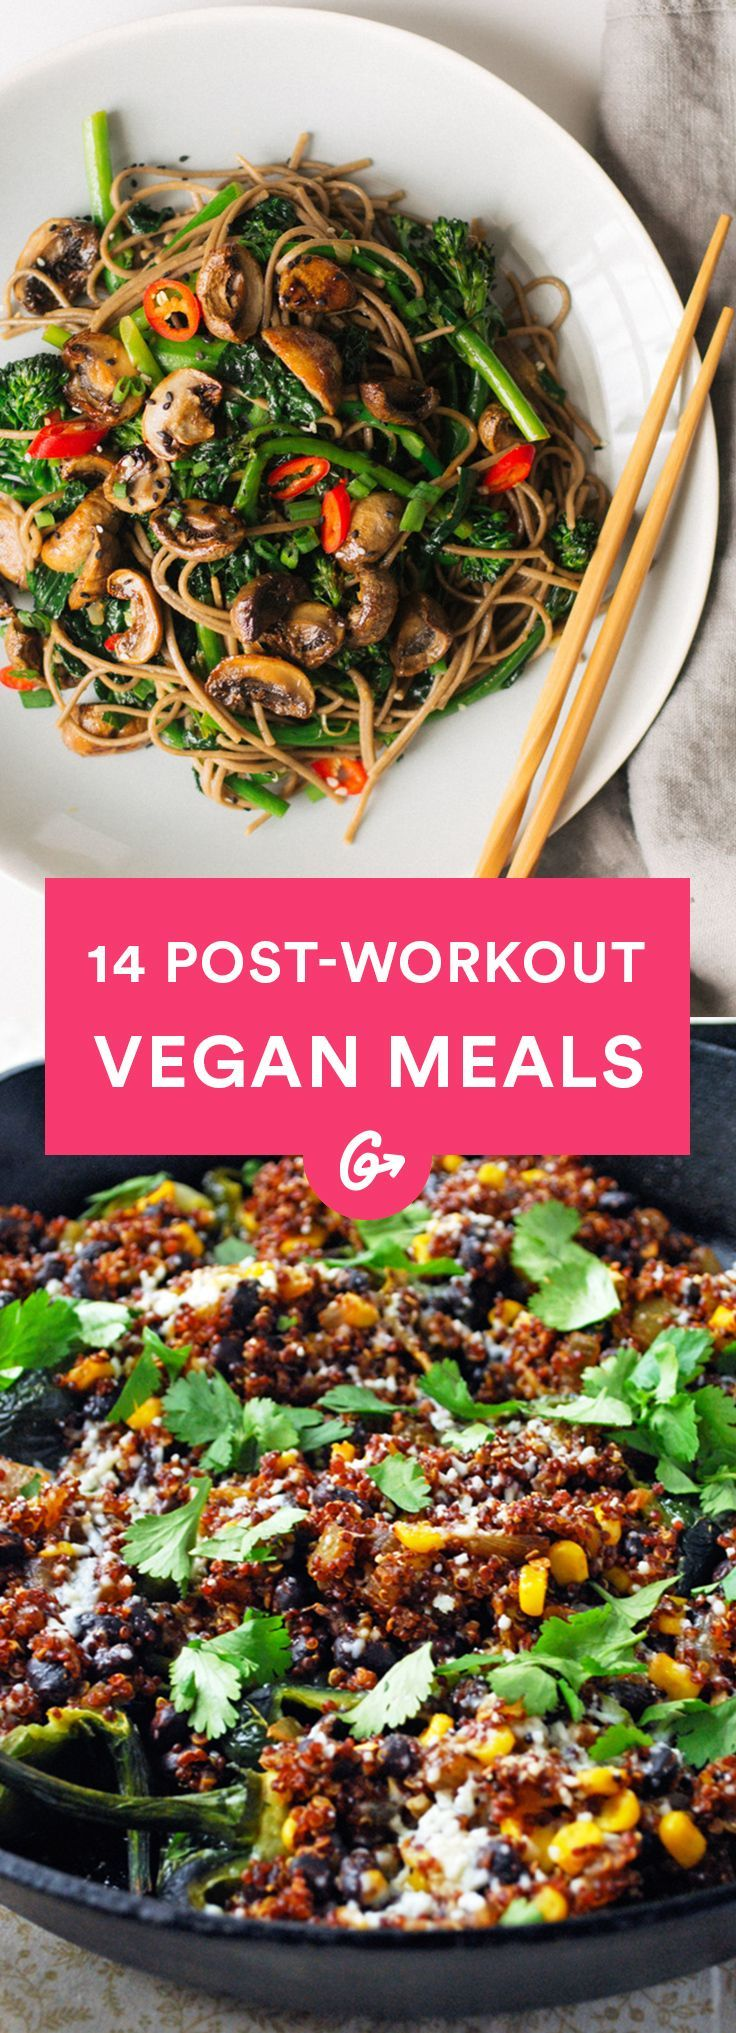 14 Awesome Post Workout Meals For Vegans High Protein Low